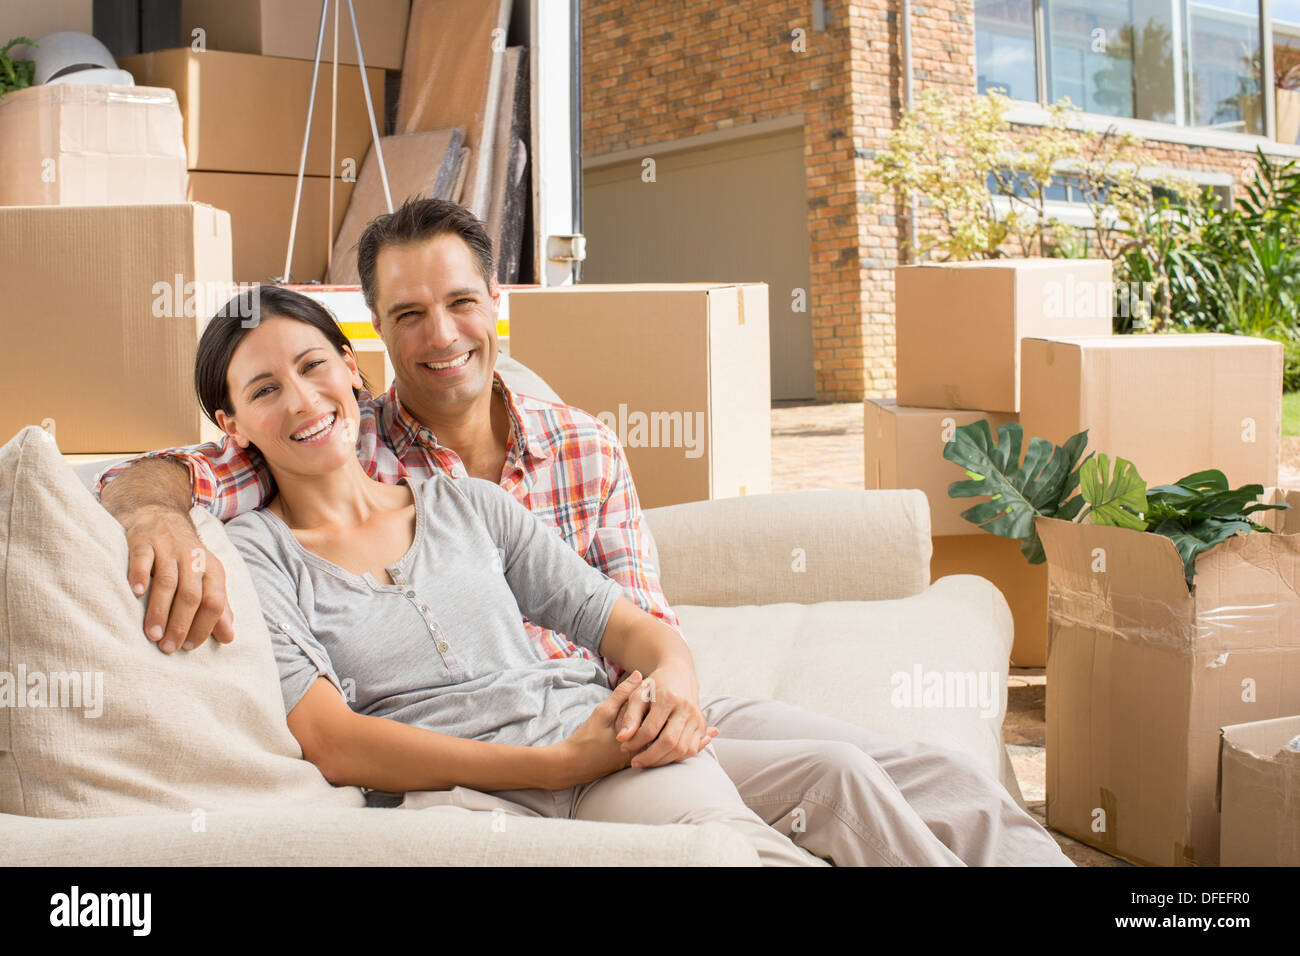 Portrait of smiling couple on sofa near moving van in driveway - Stock Image